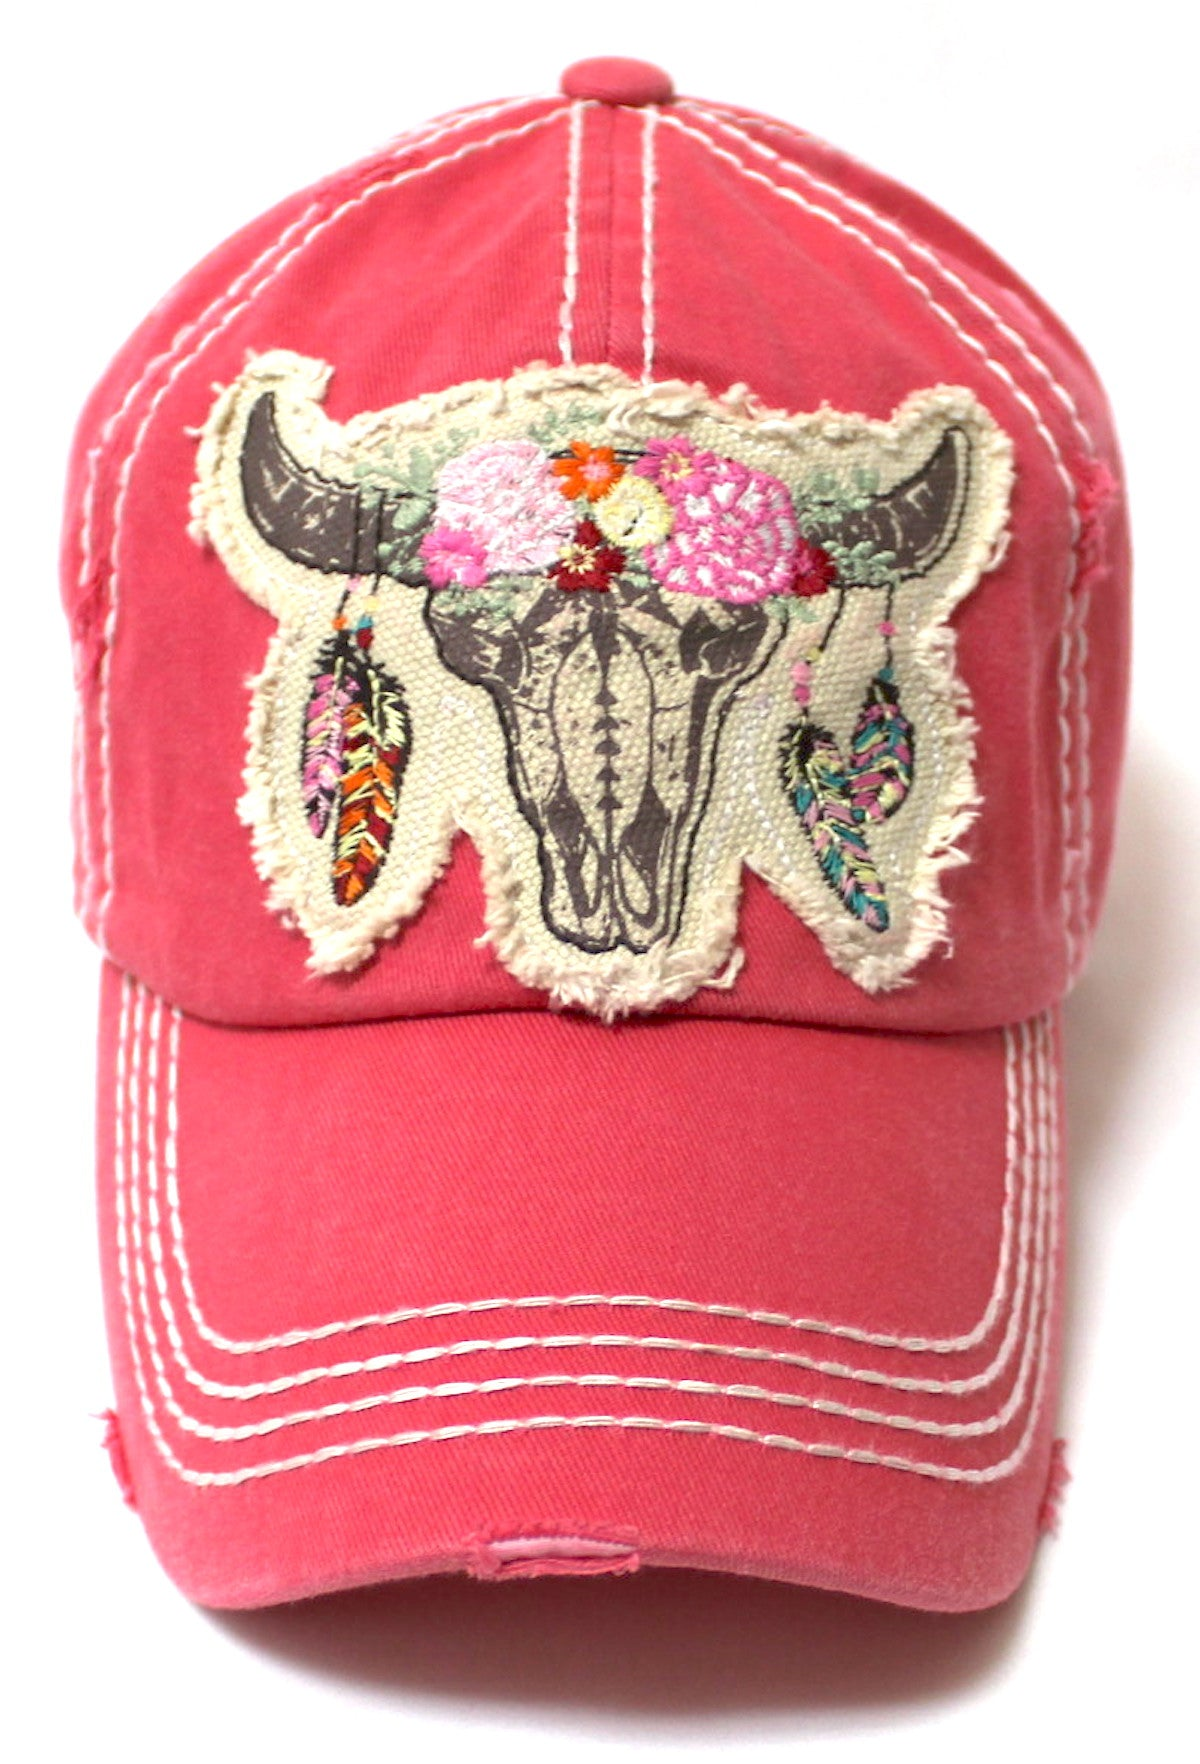 Floral Cow Skull Patch Embroidery Vintage Baseball Hat, Charcoal - Caps 'N Vintage